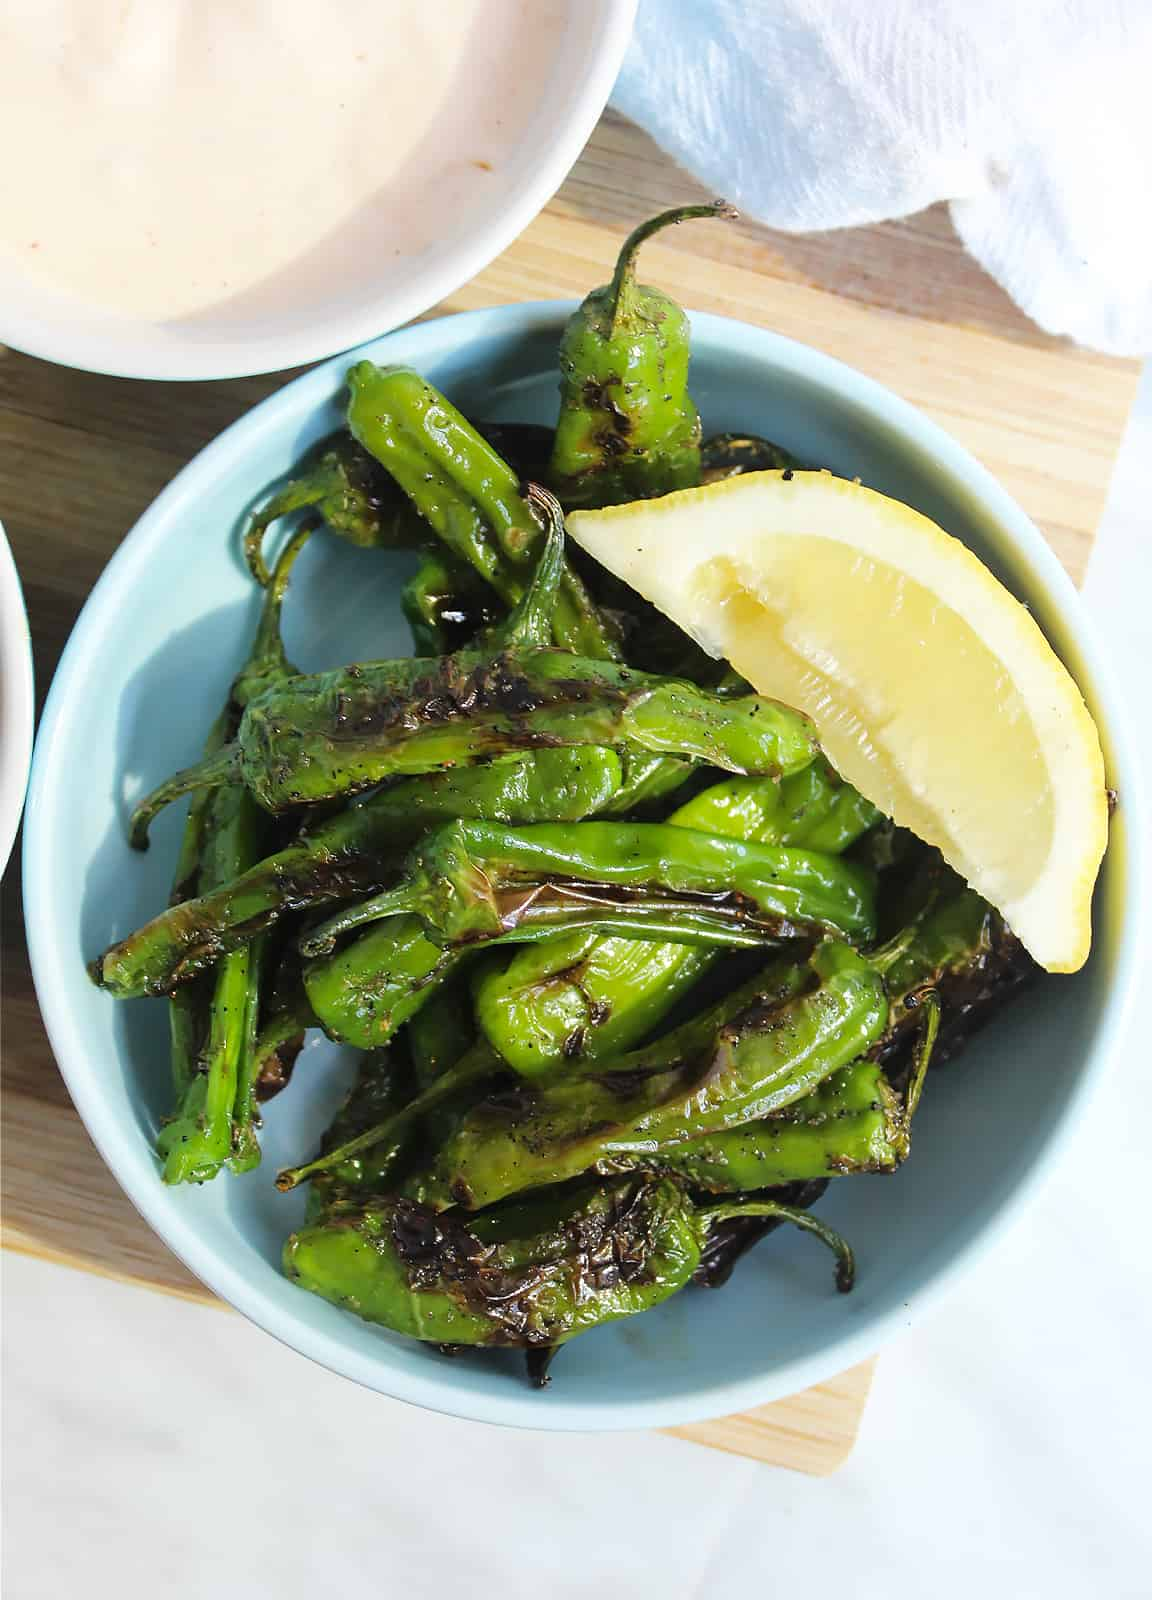 Shishito peppers in a bowl with a lemon wedge